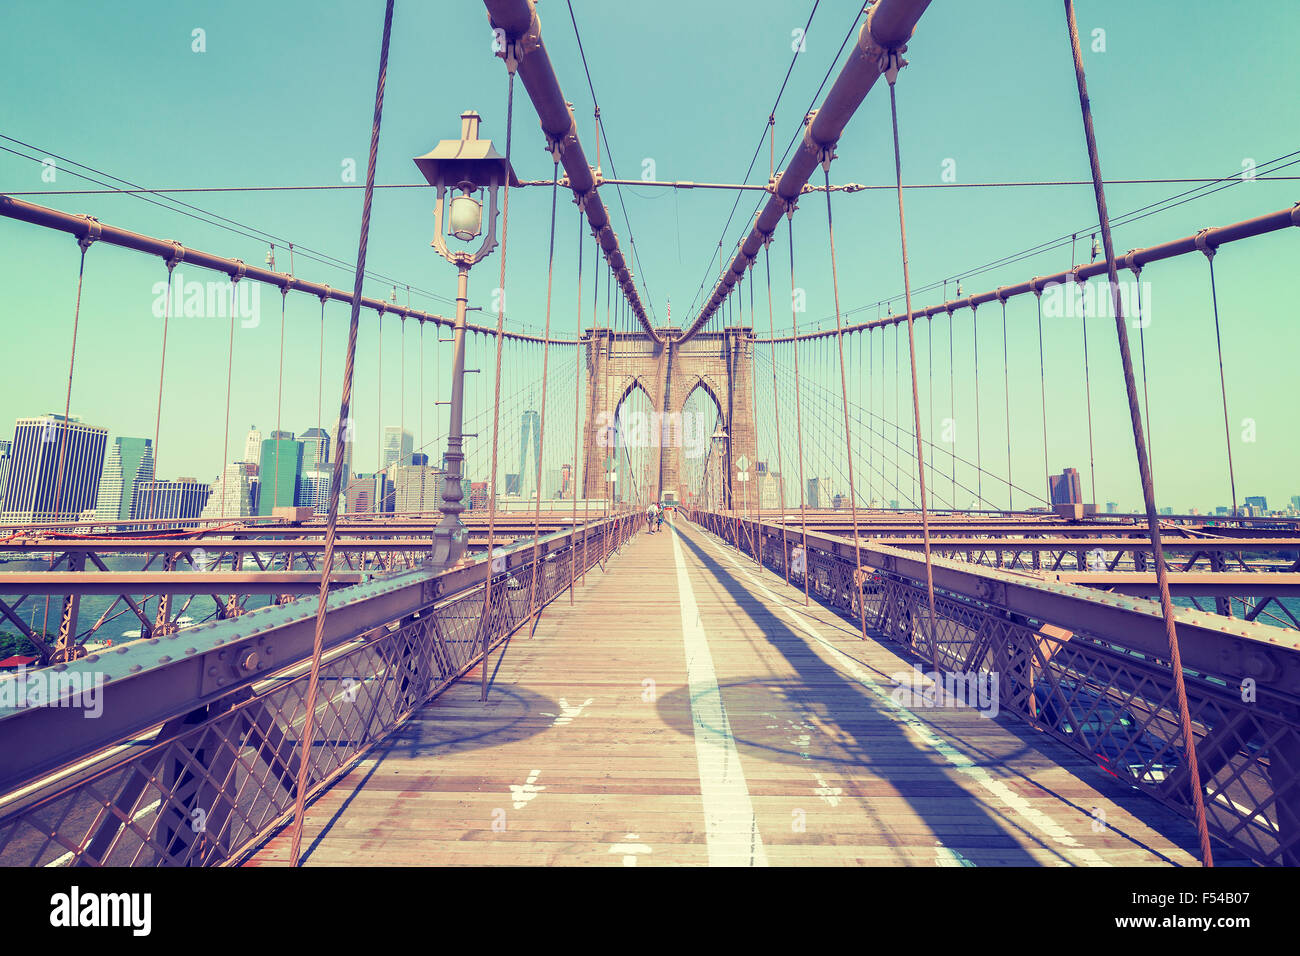 Vintage stylized photo of the Brooklyn Bridge, NYC, USA. - Stock Image